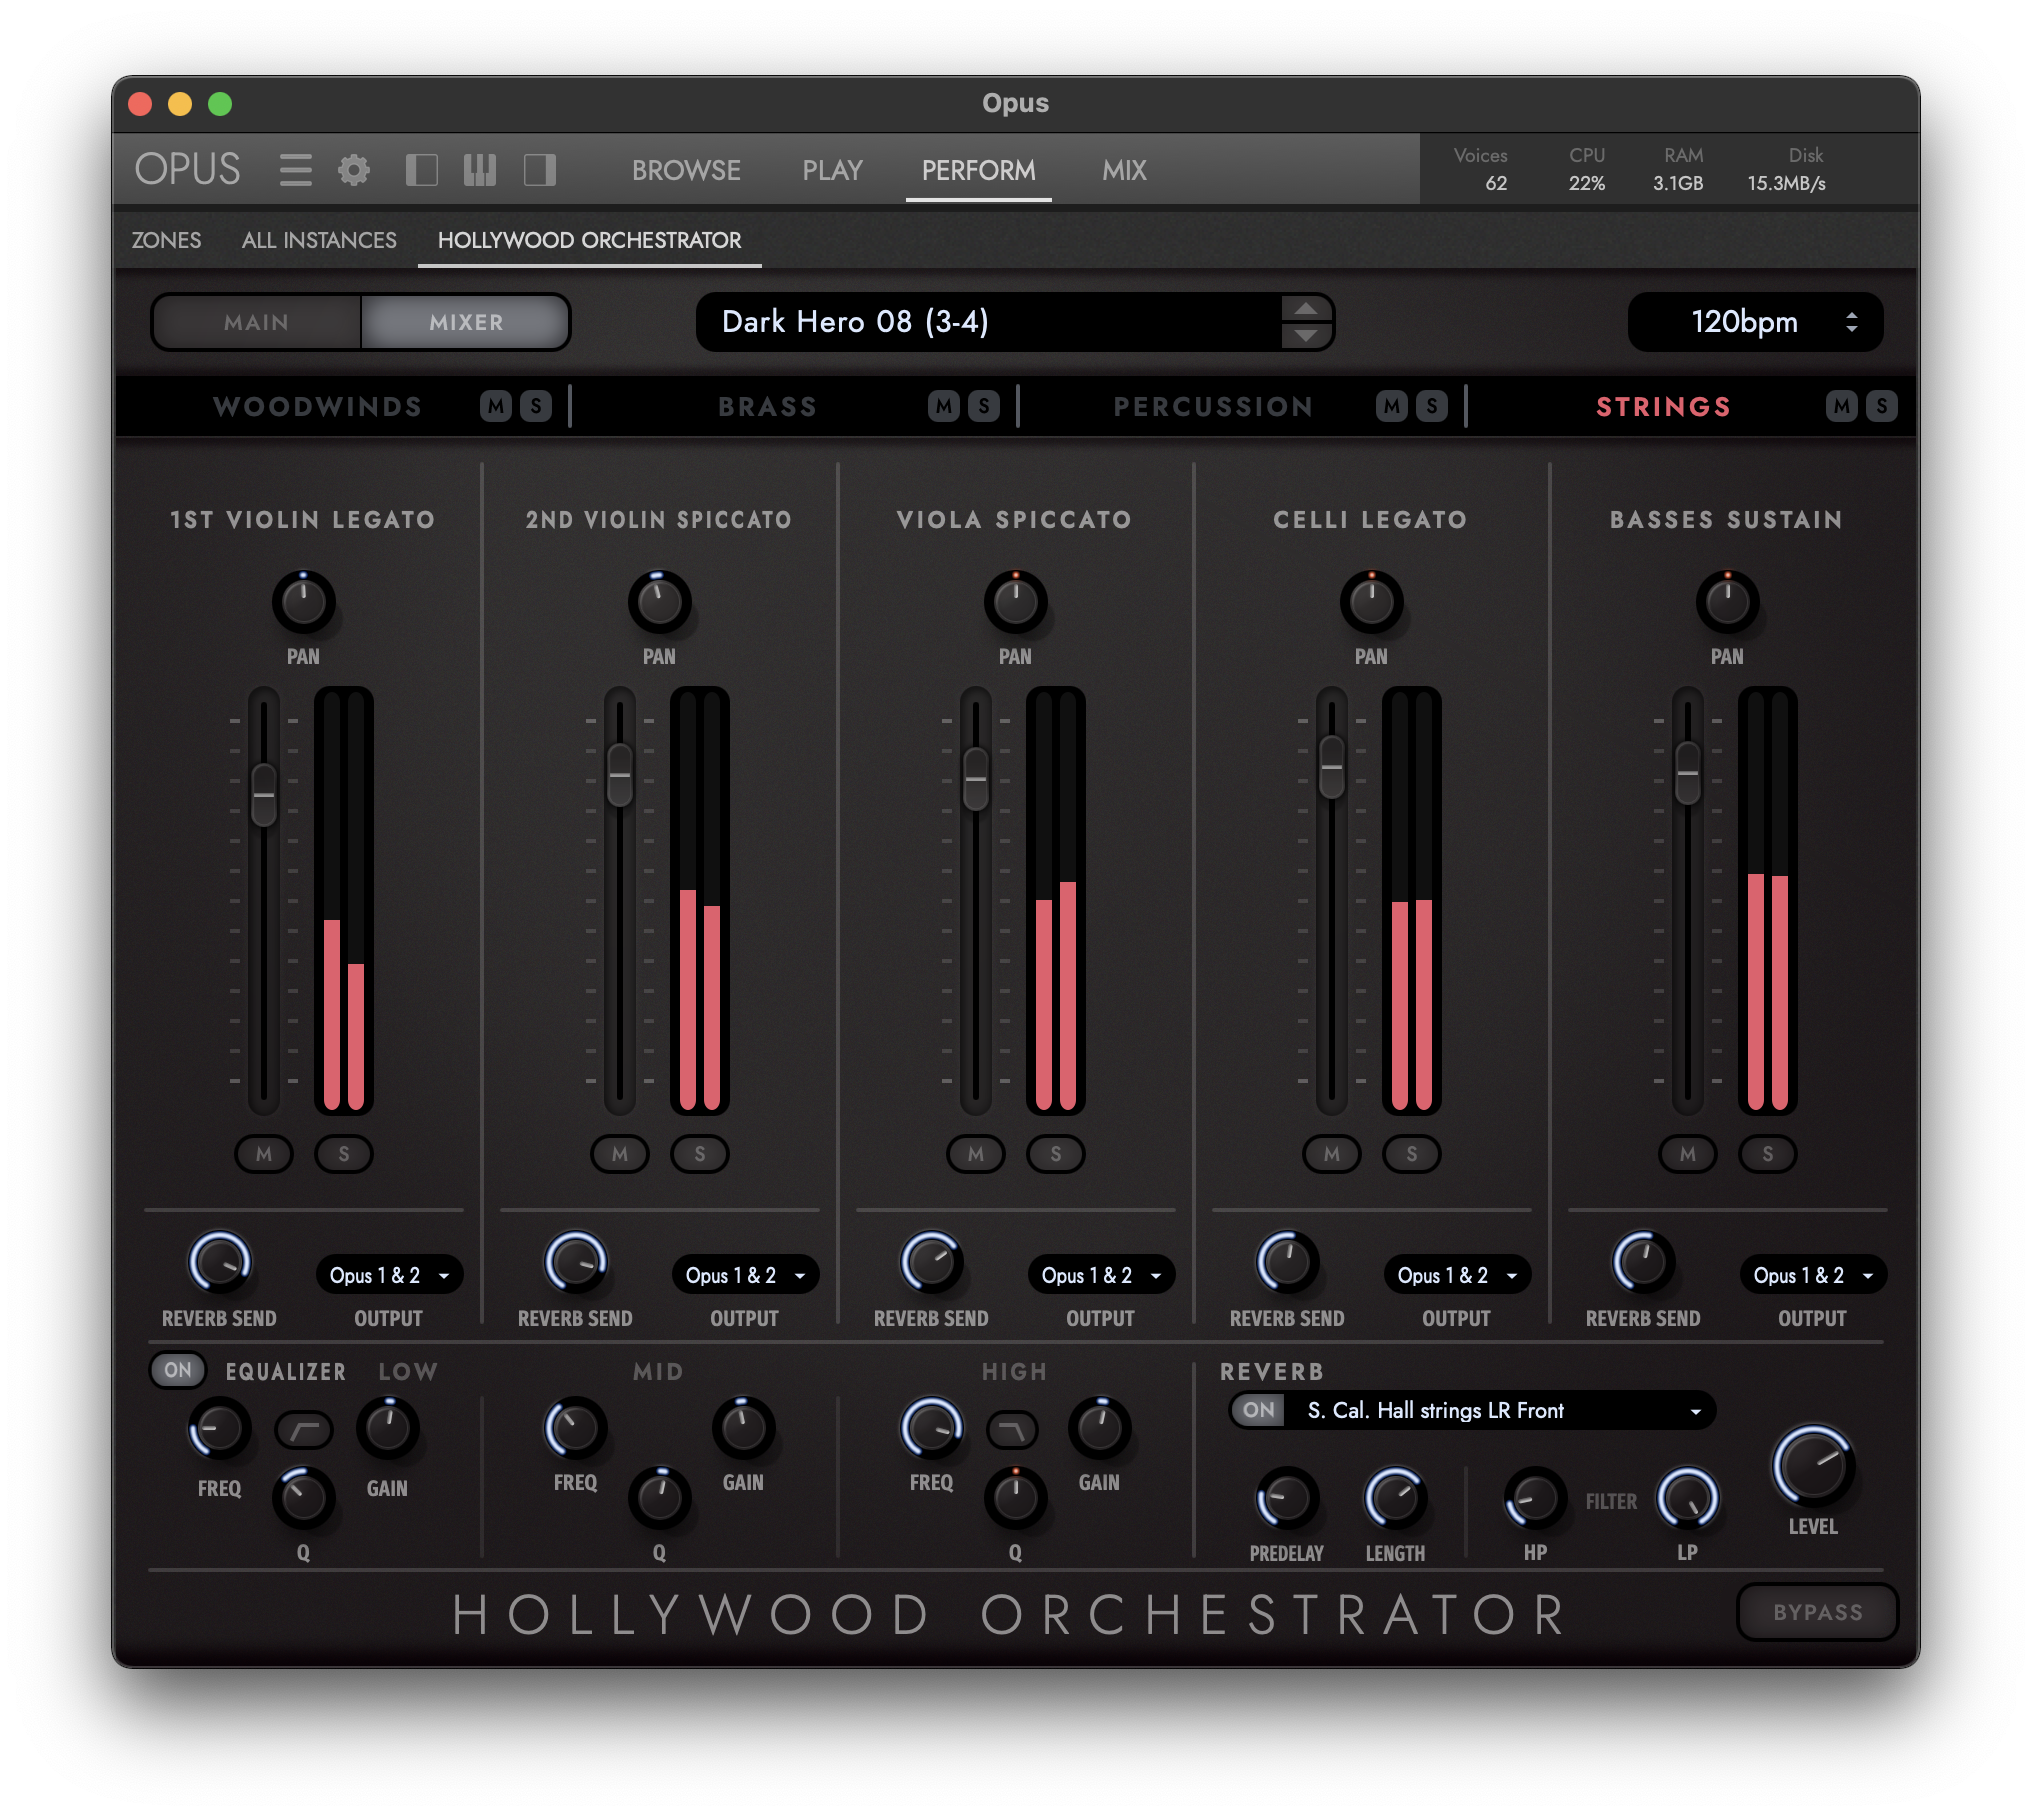 Hollywood Orchestrator - Mixer View